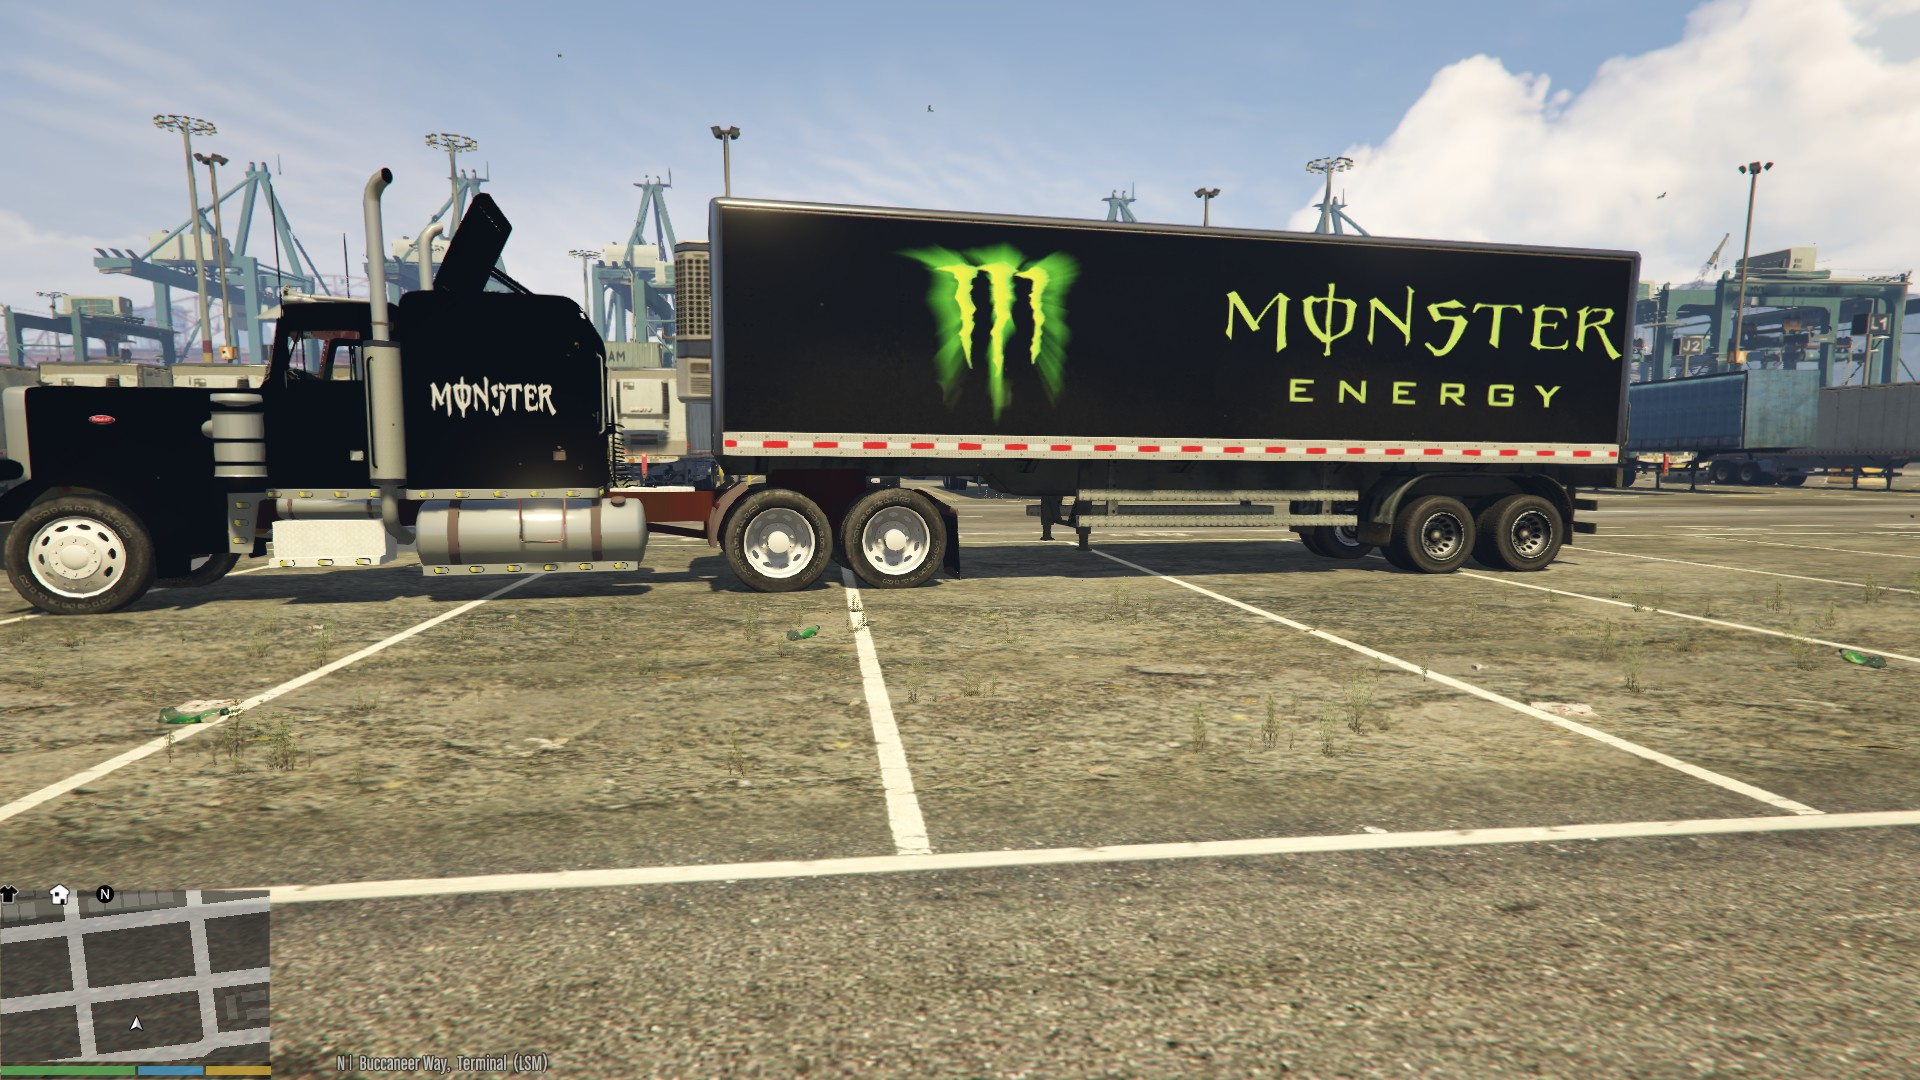 How Much Does A Monster Truck Cost >> Monster Energy Truck - Ace Energy